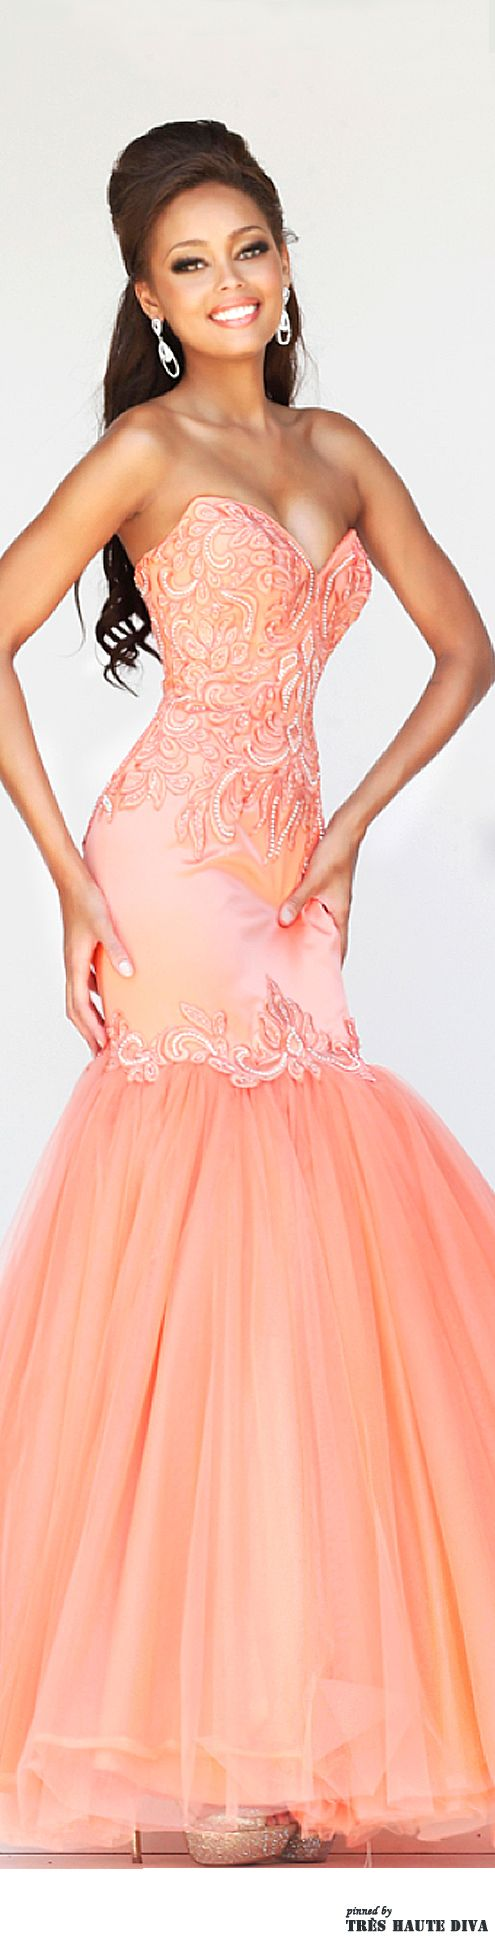 I love this for a teen pageant prom dressevening dress cocktail